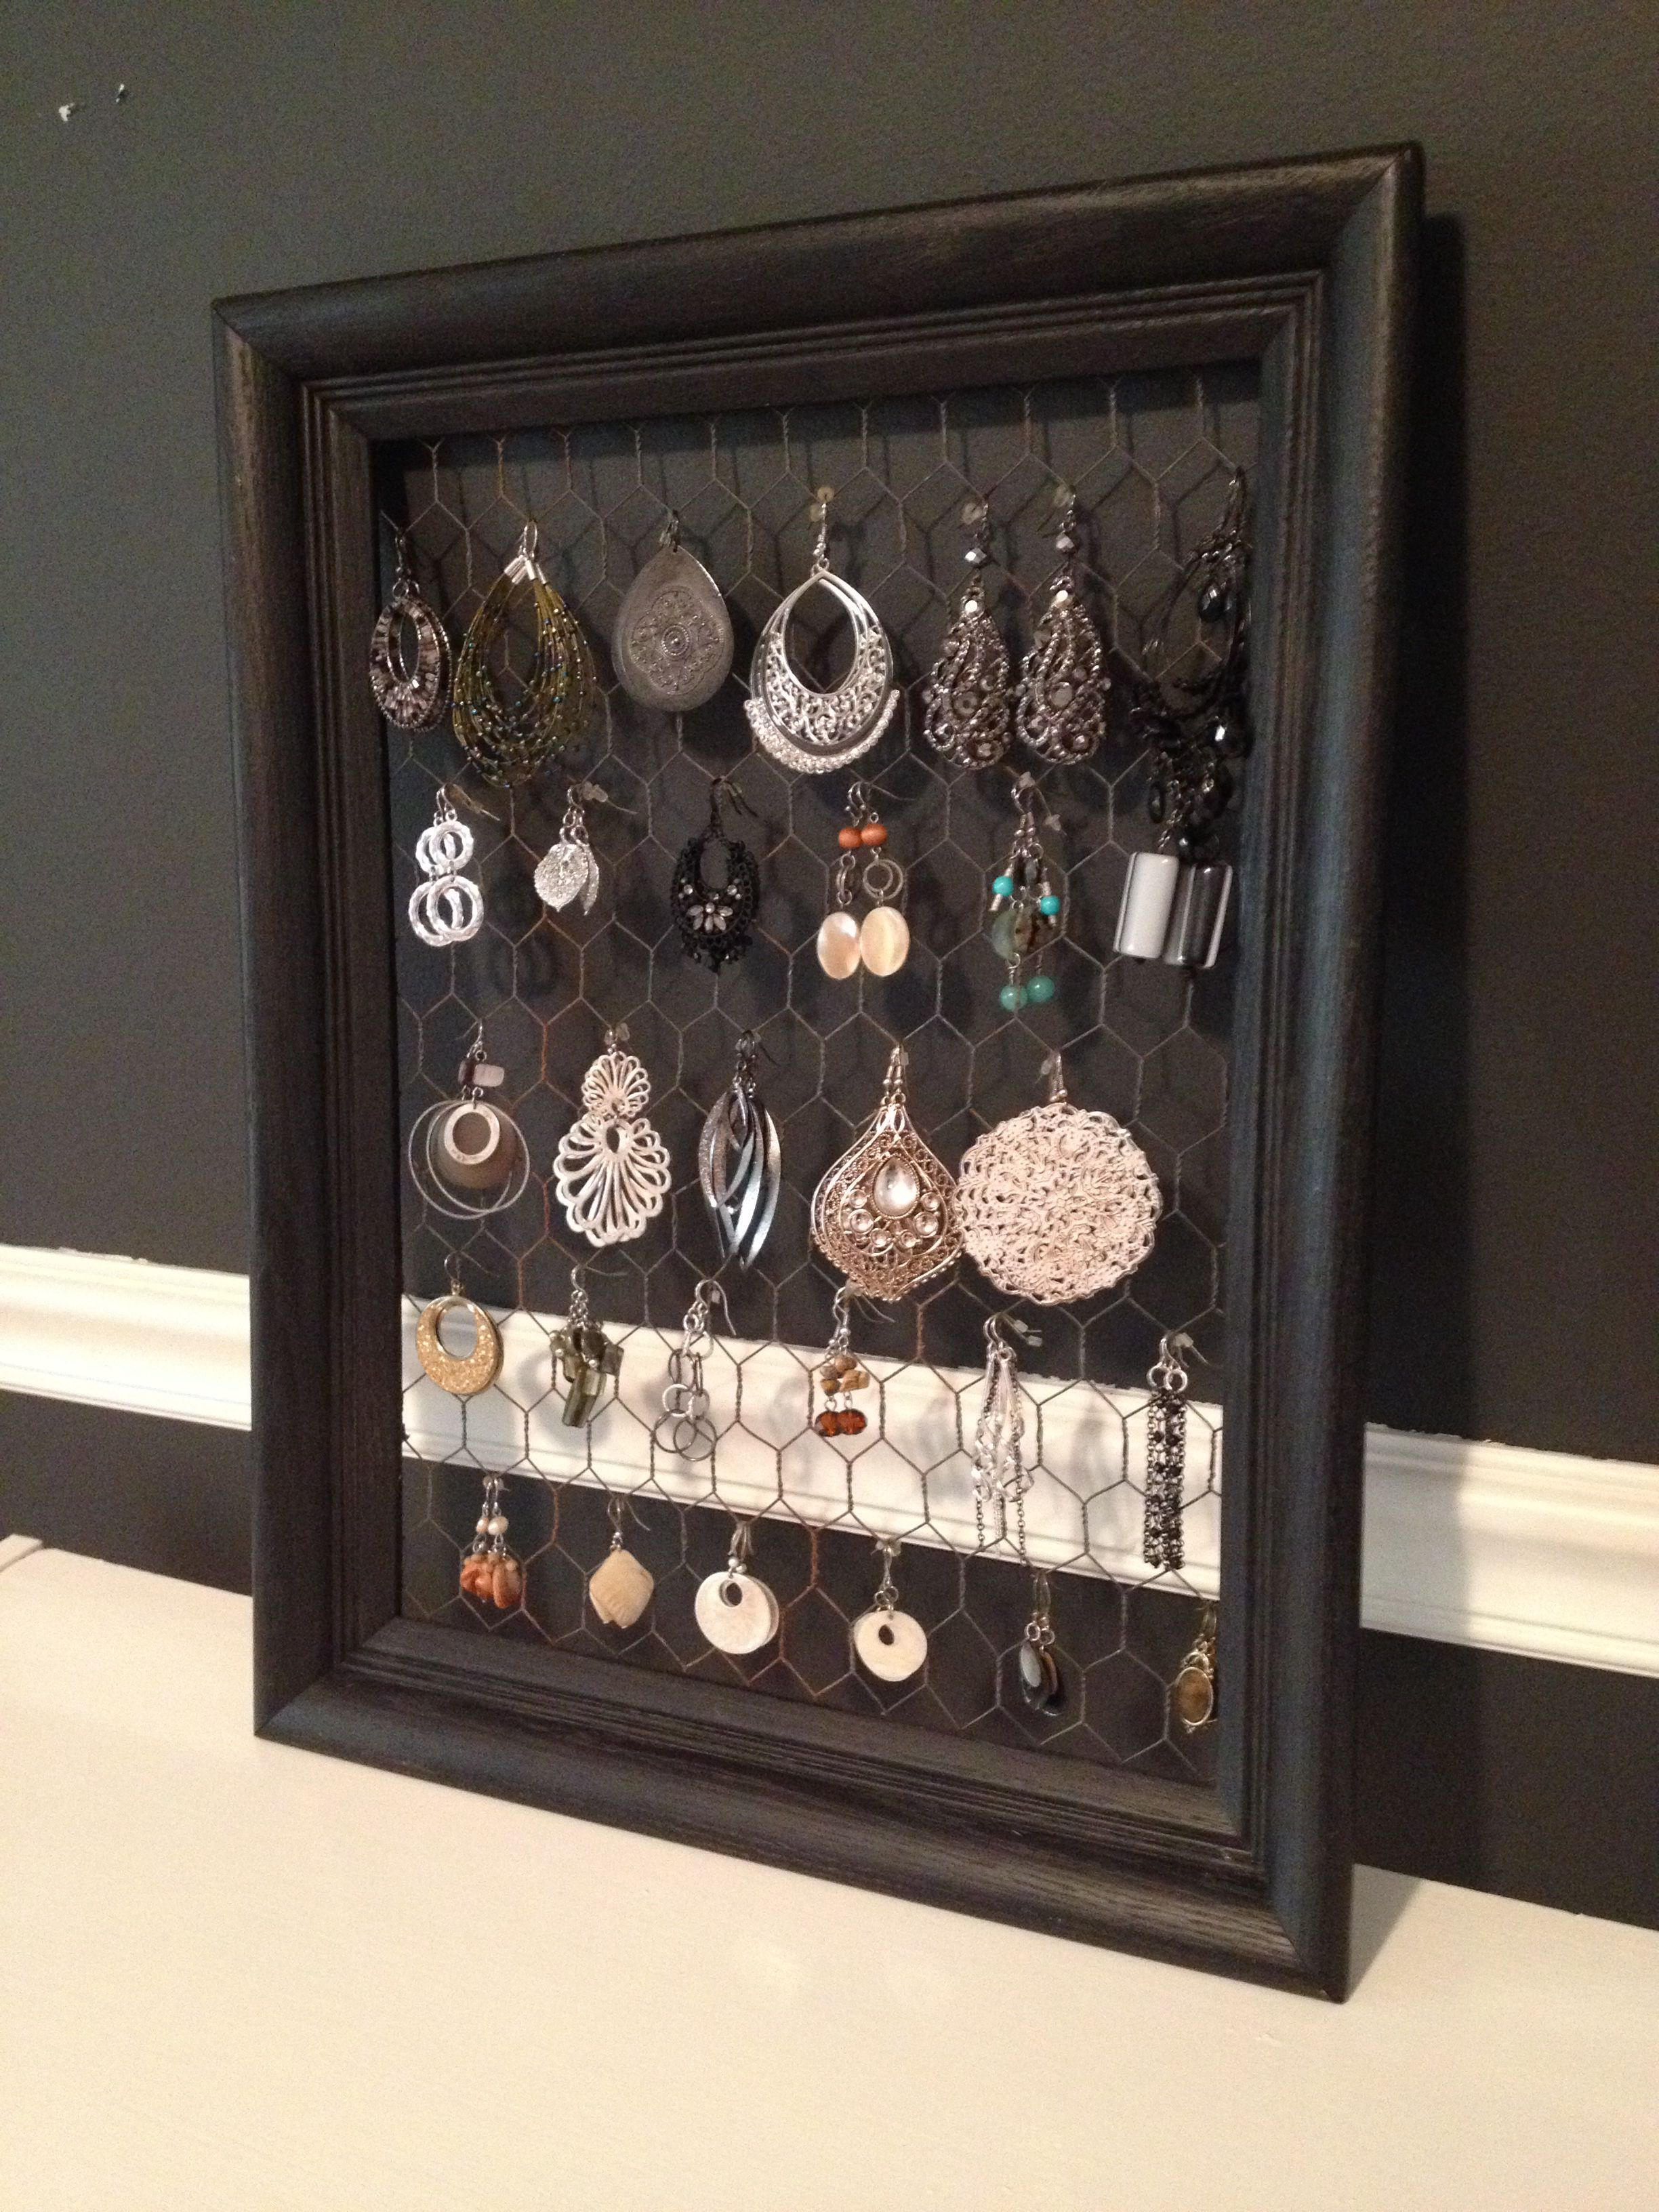 Earring Display With Chicken Wire & Empty Frame